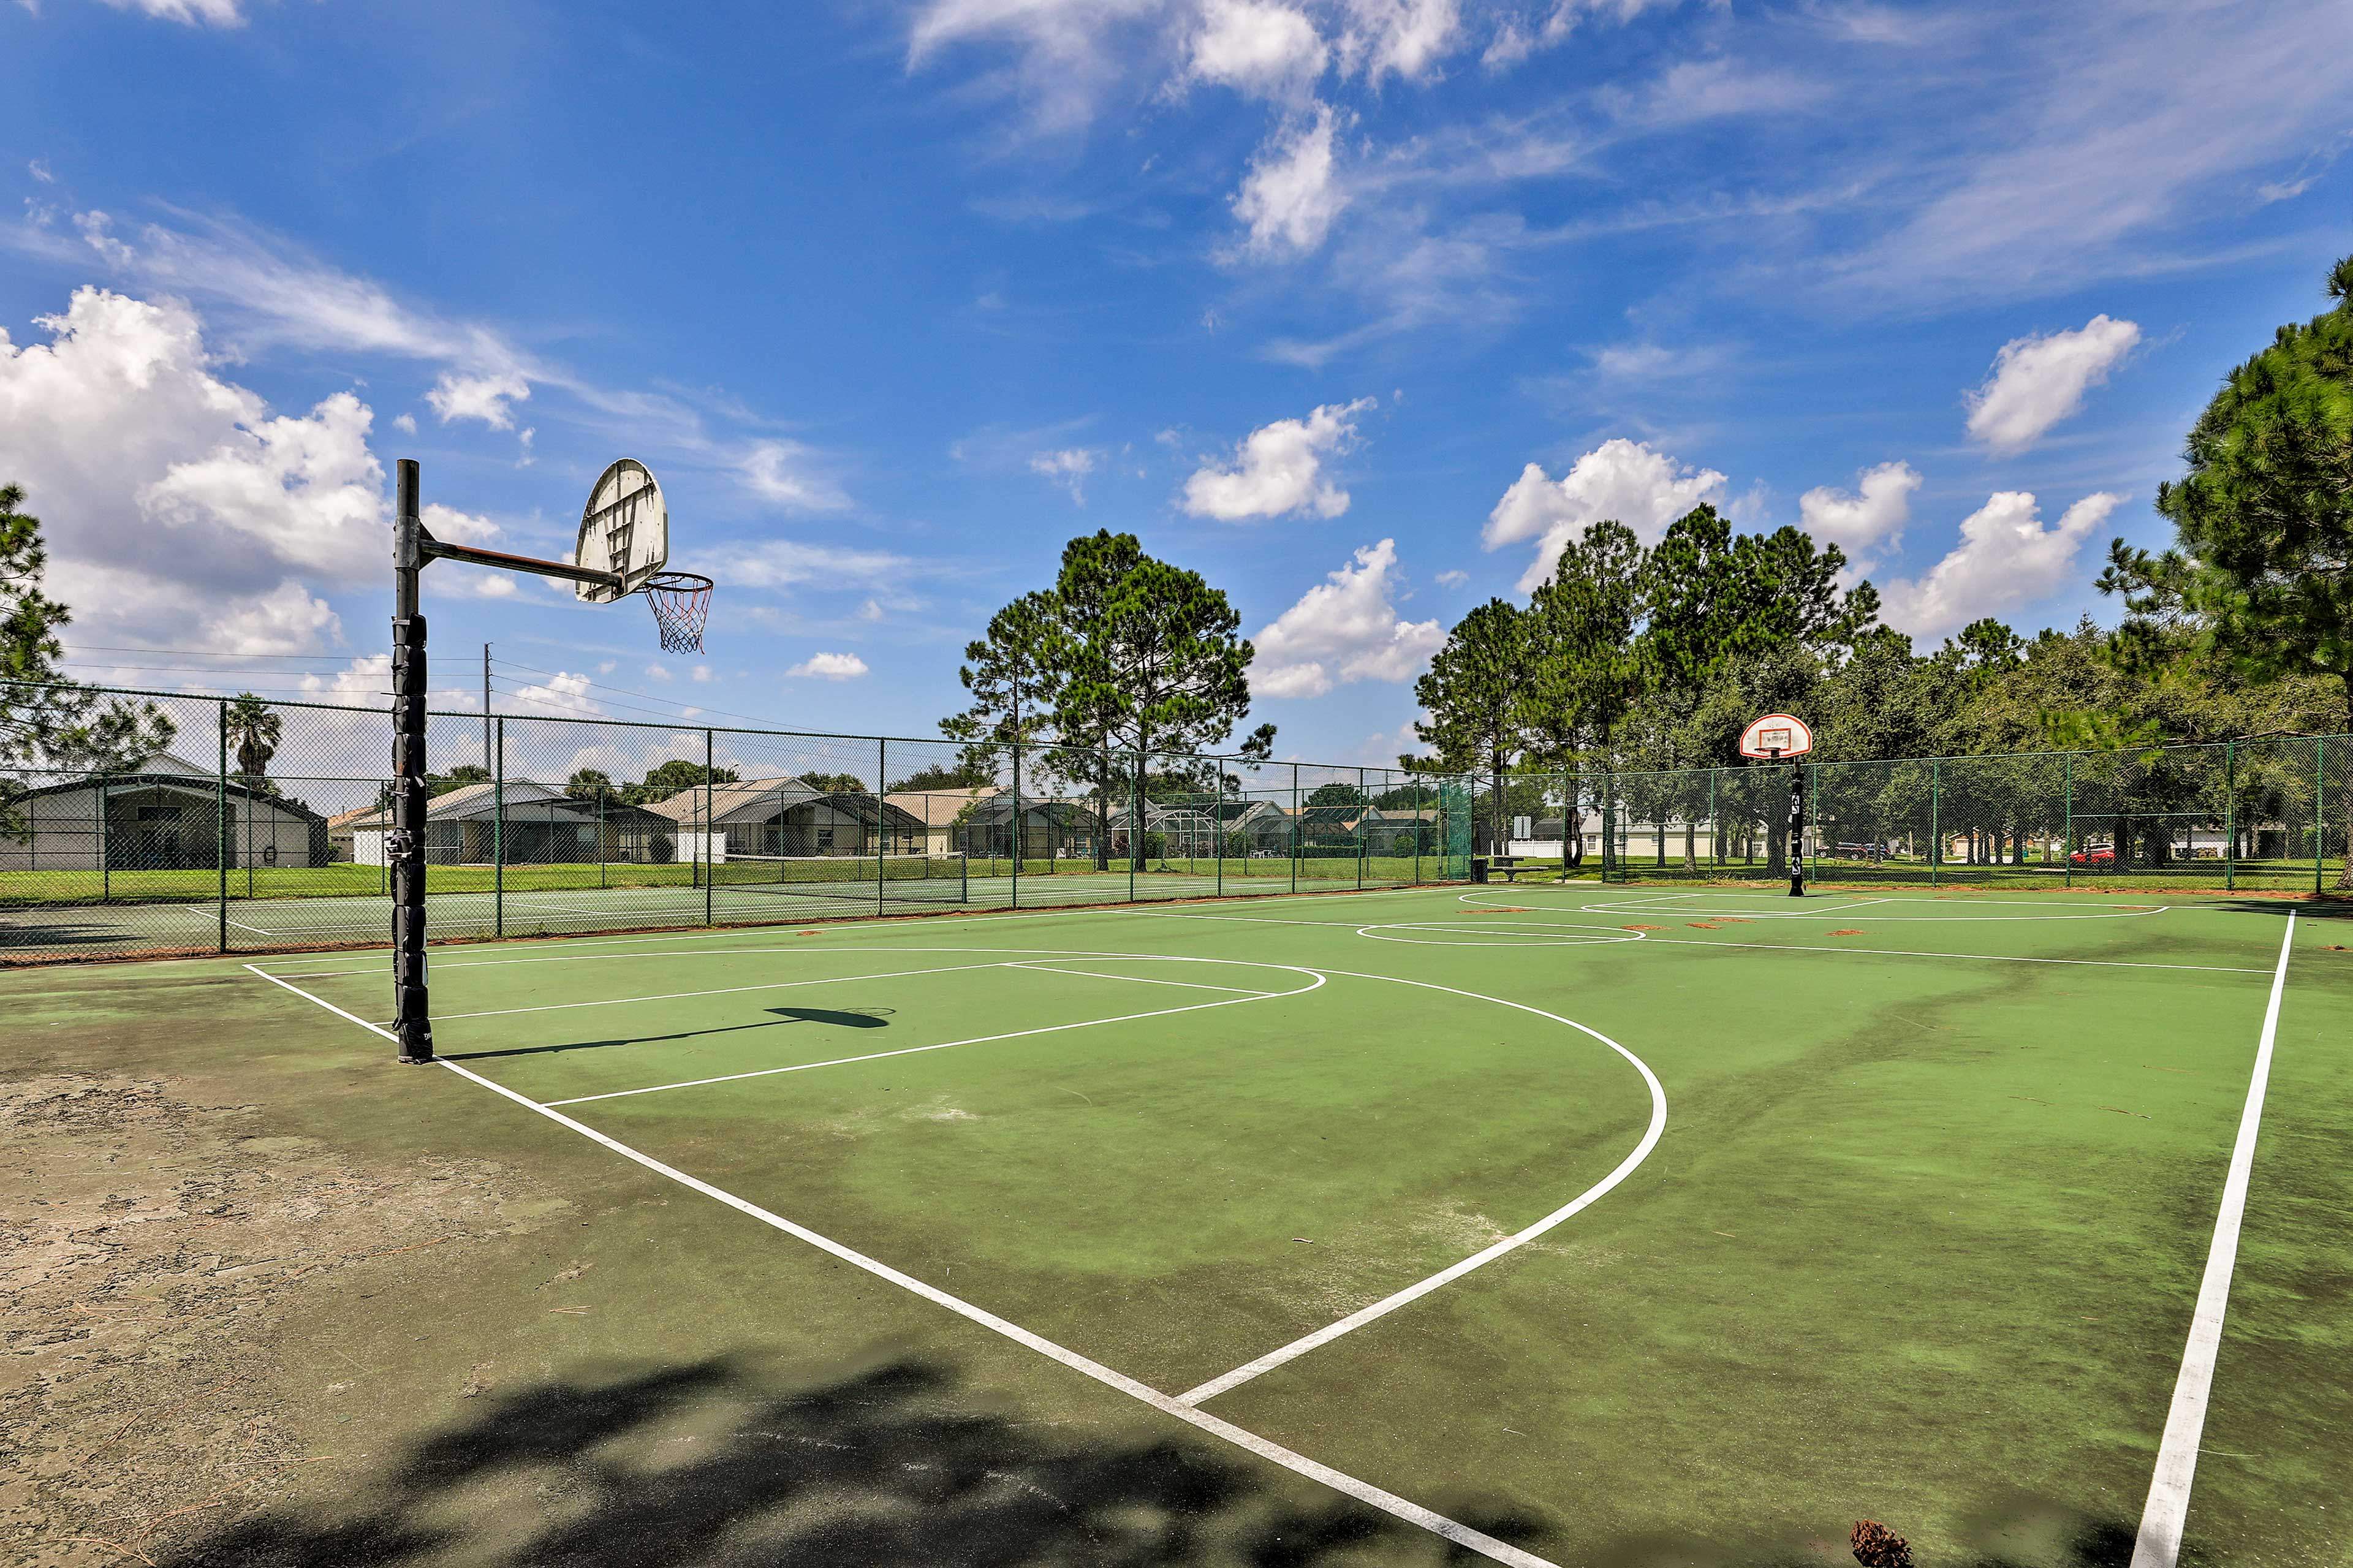 Think you can play ball? Head out to the community basketball court!